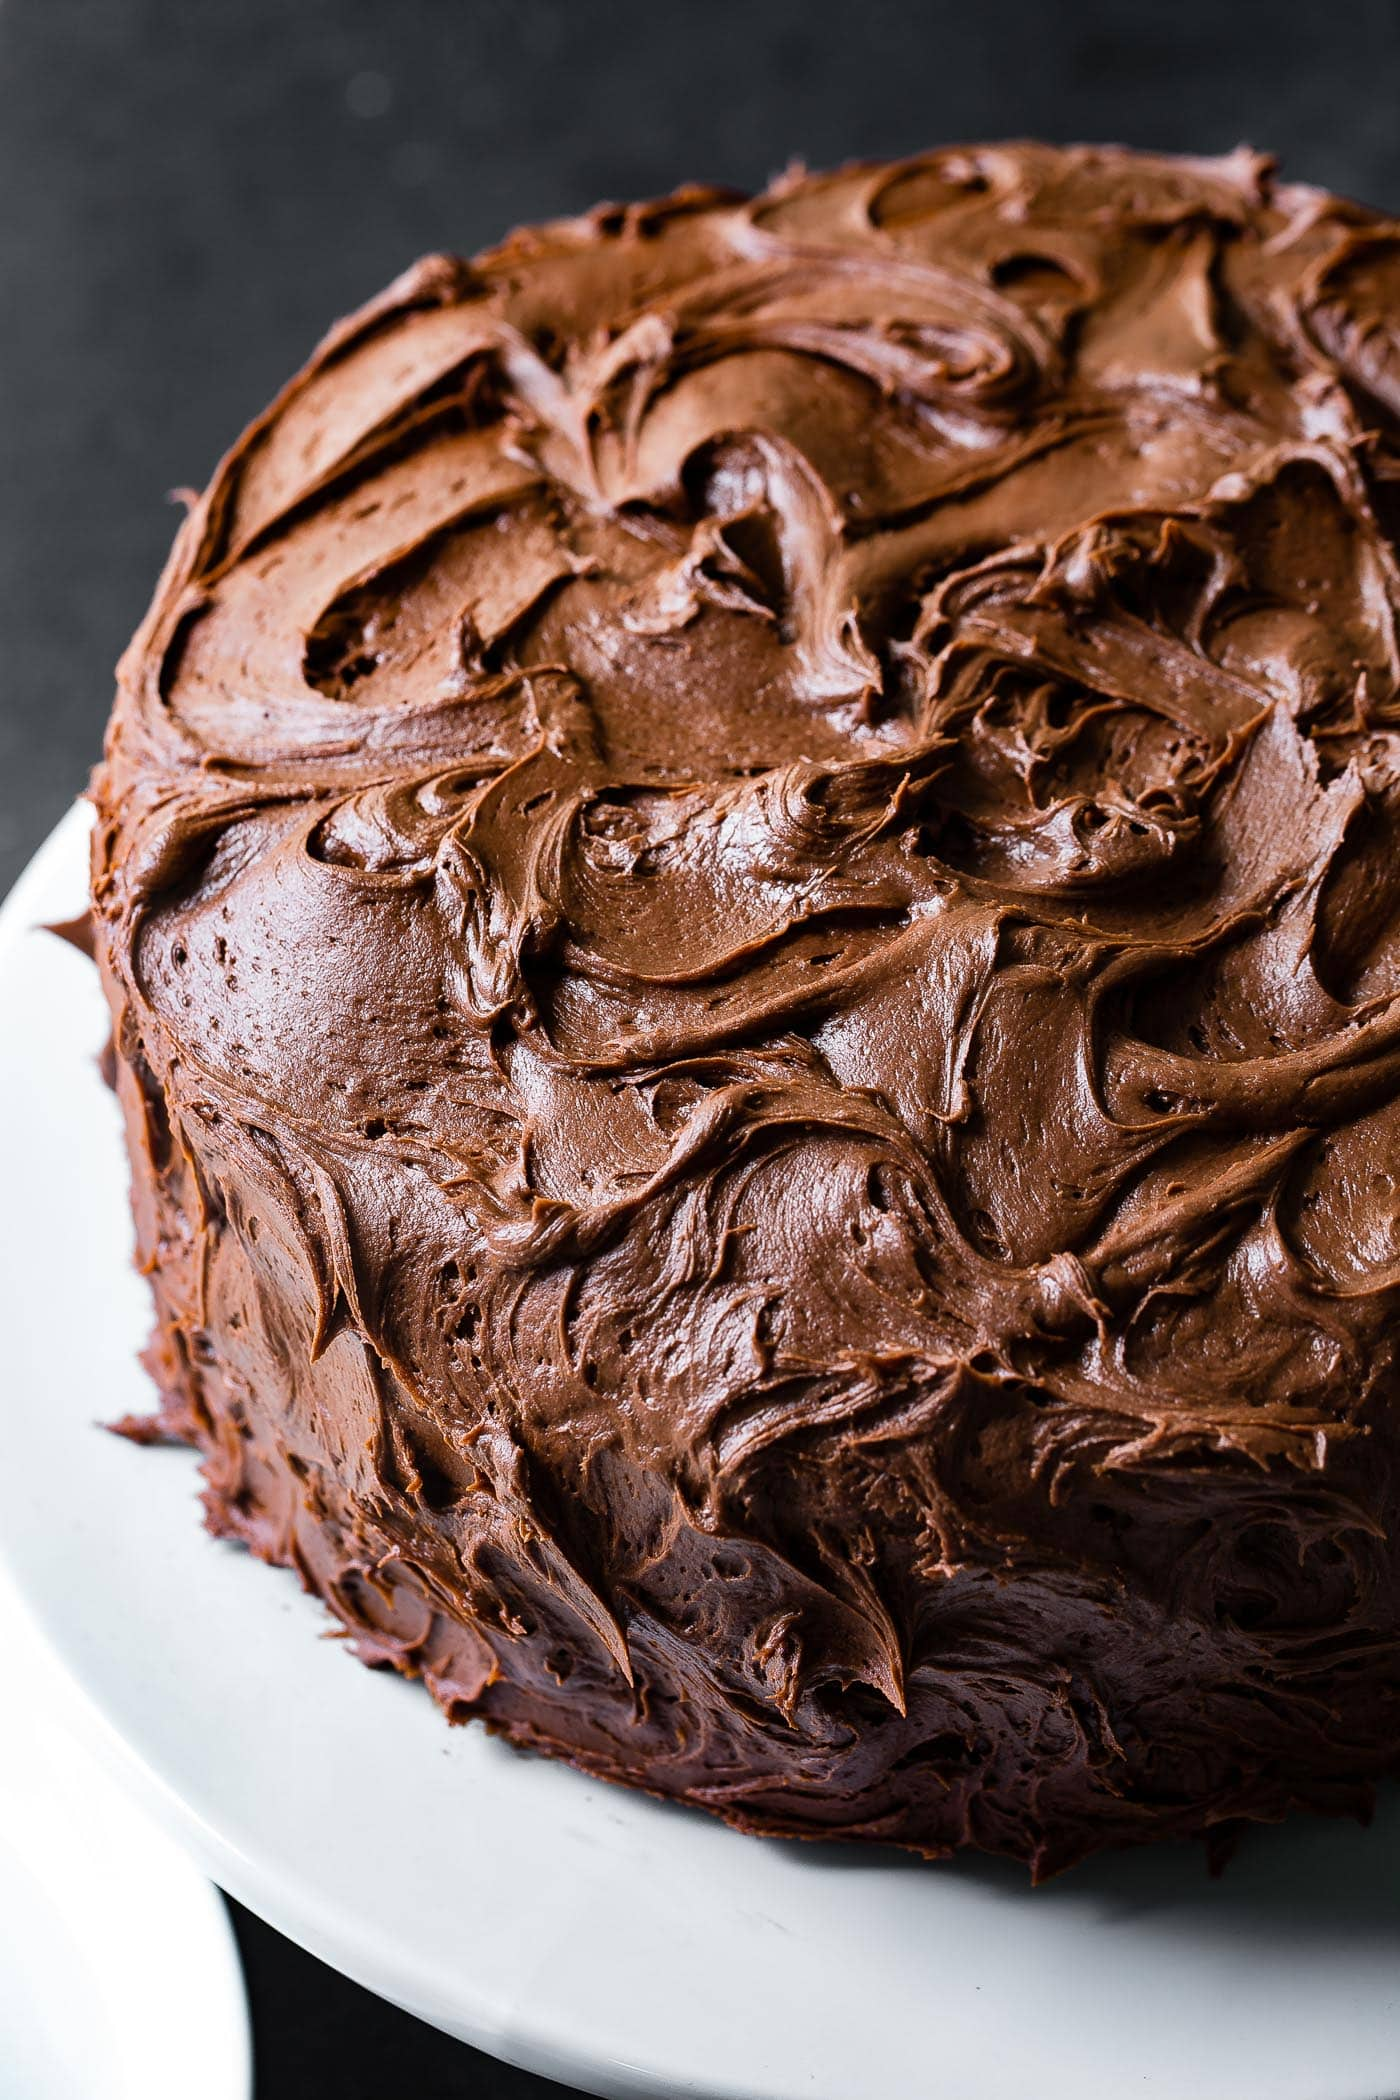 A chocolate layer cake with chocolate frosting.